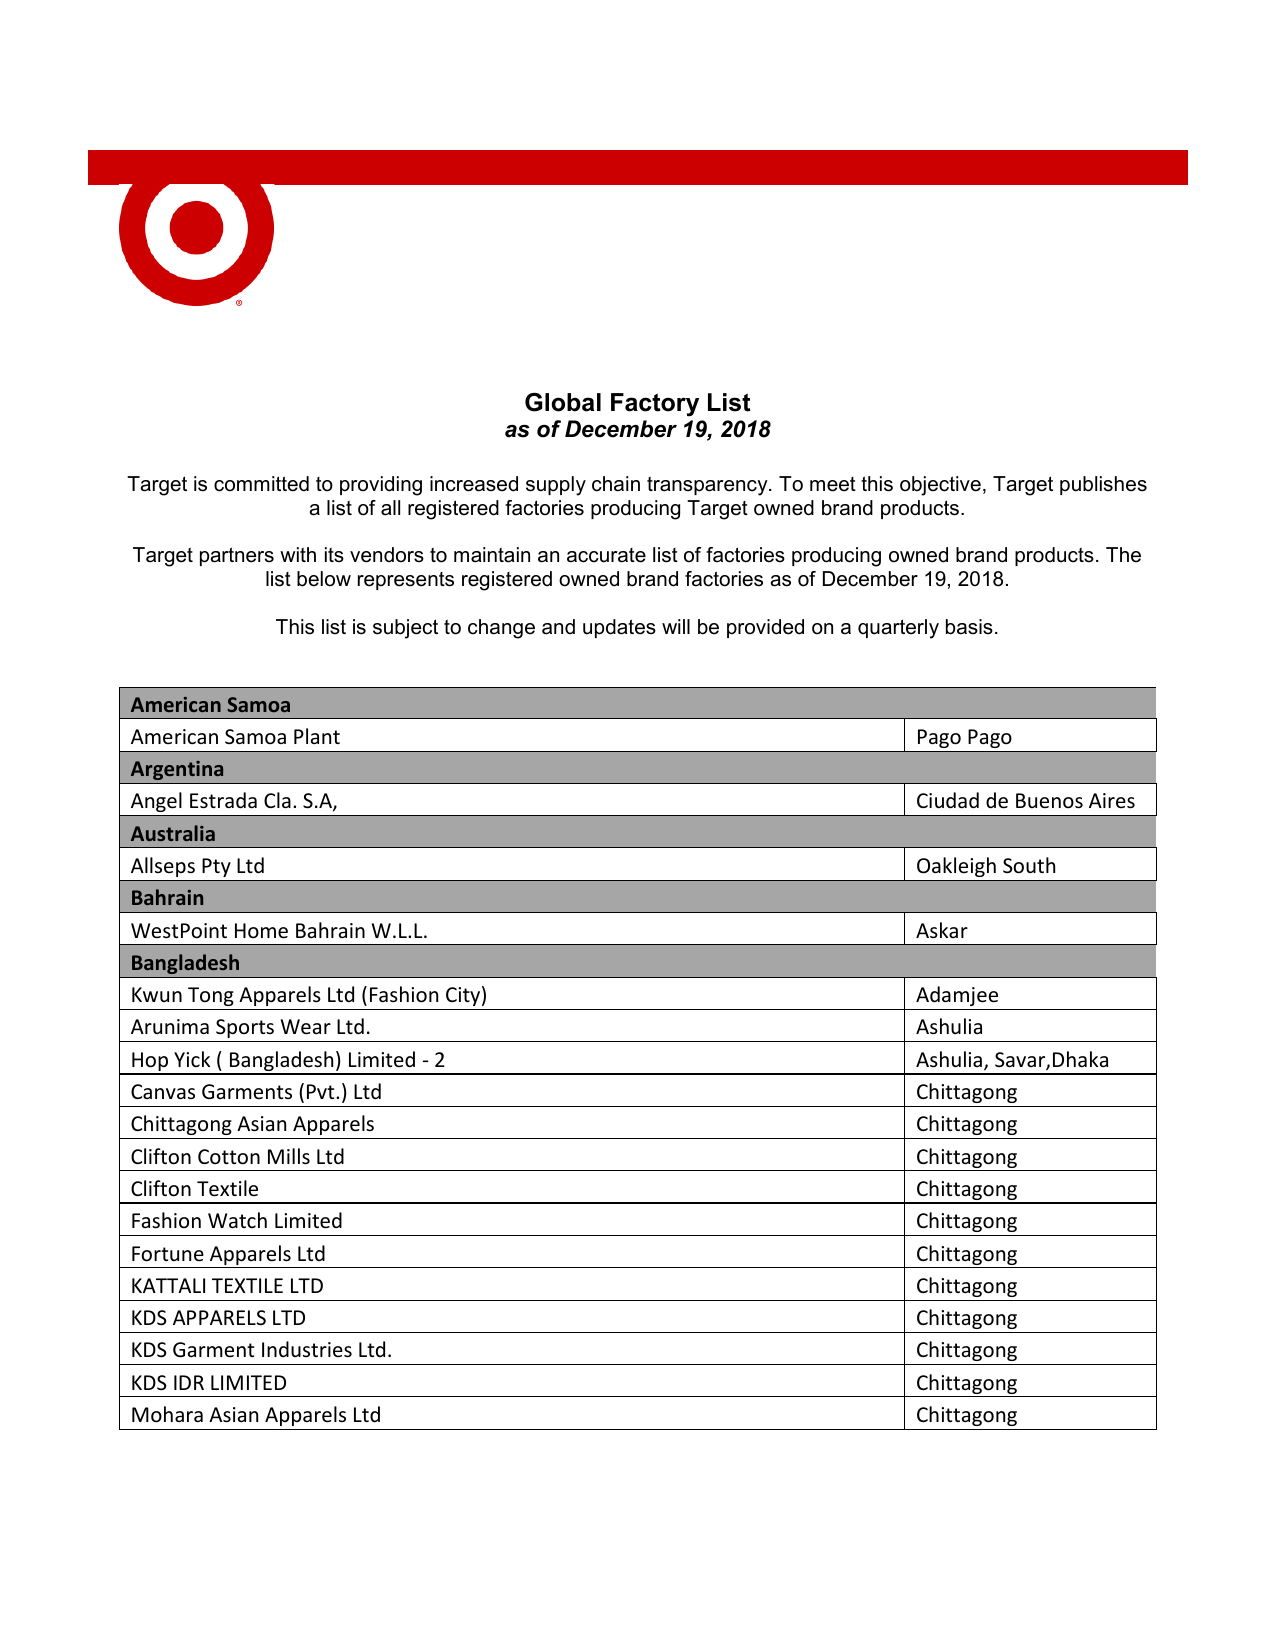 Target-Global-Factory-List Q4 2018